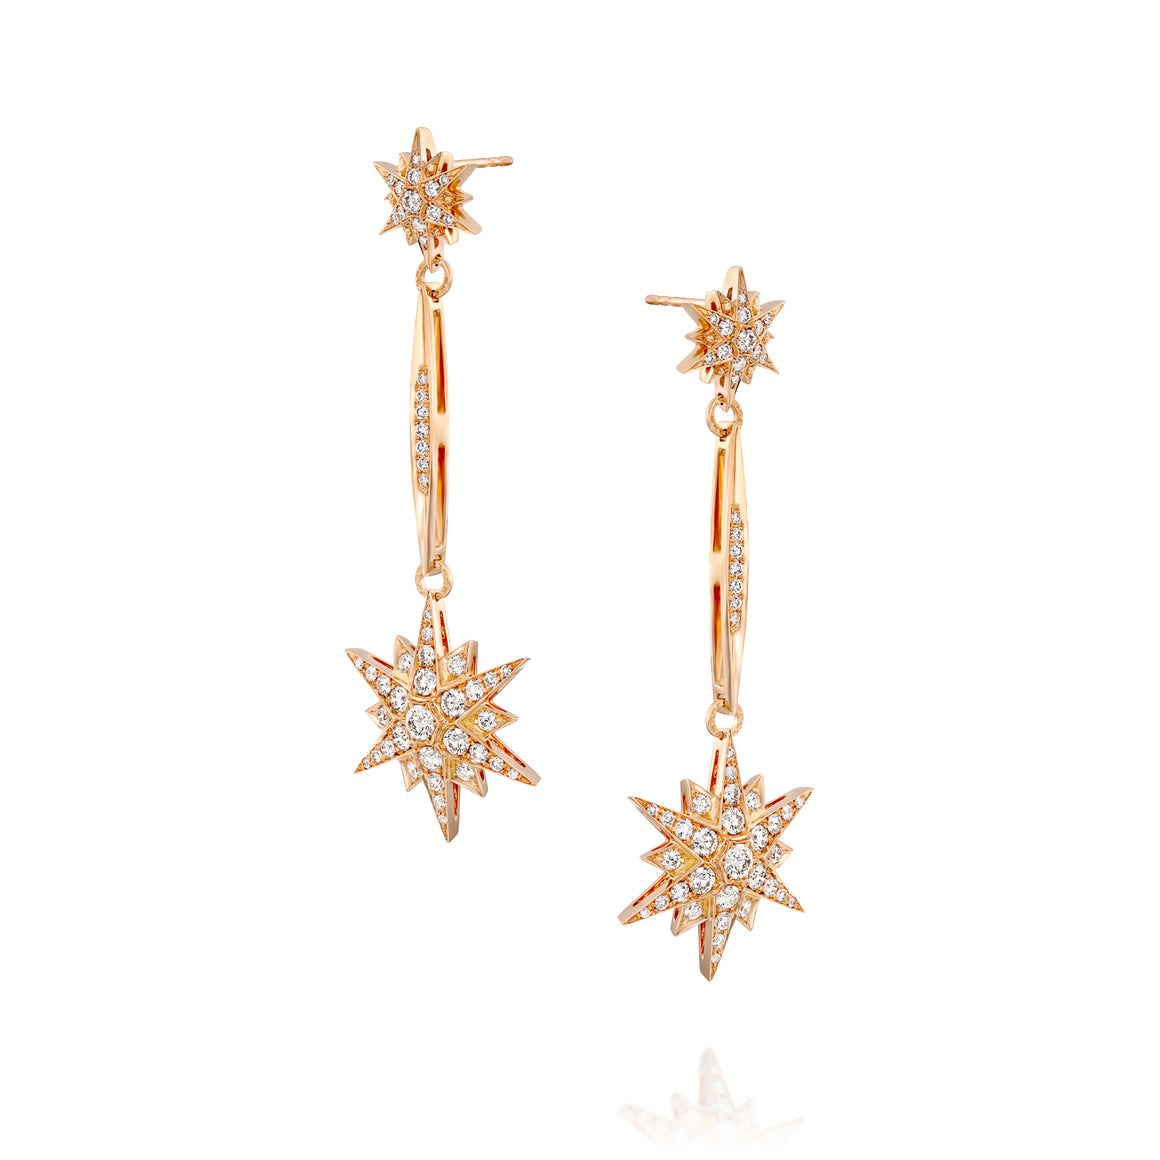 2.53 Carat celestial diamond North Star earrings in 18k rose gold